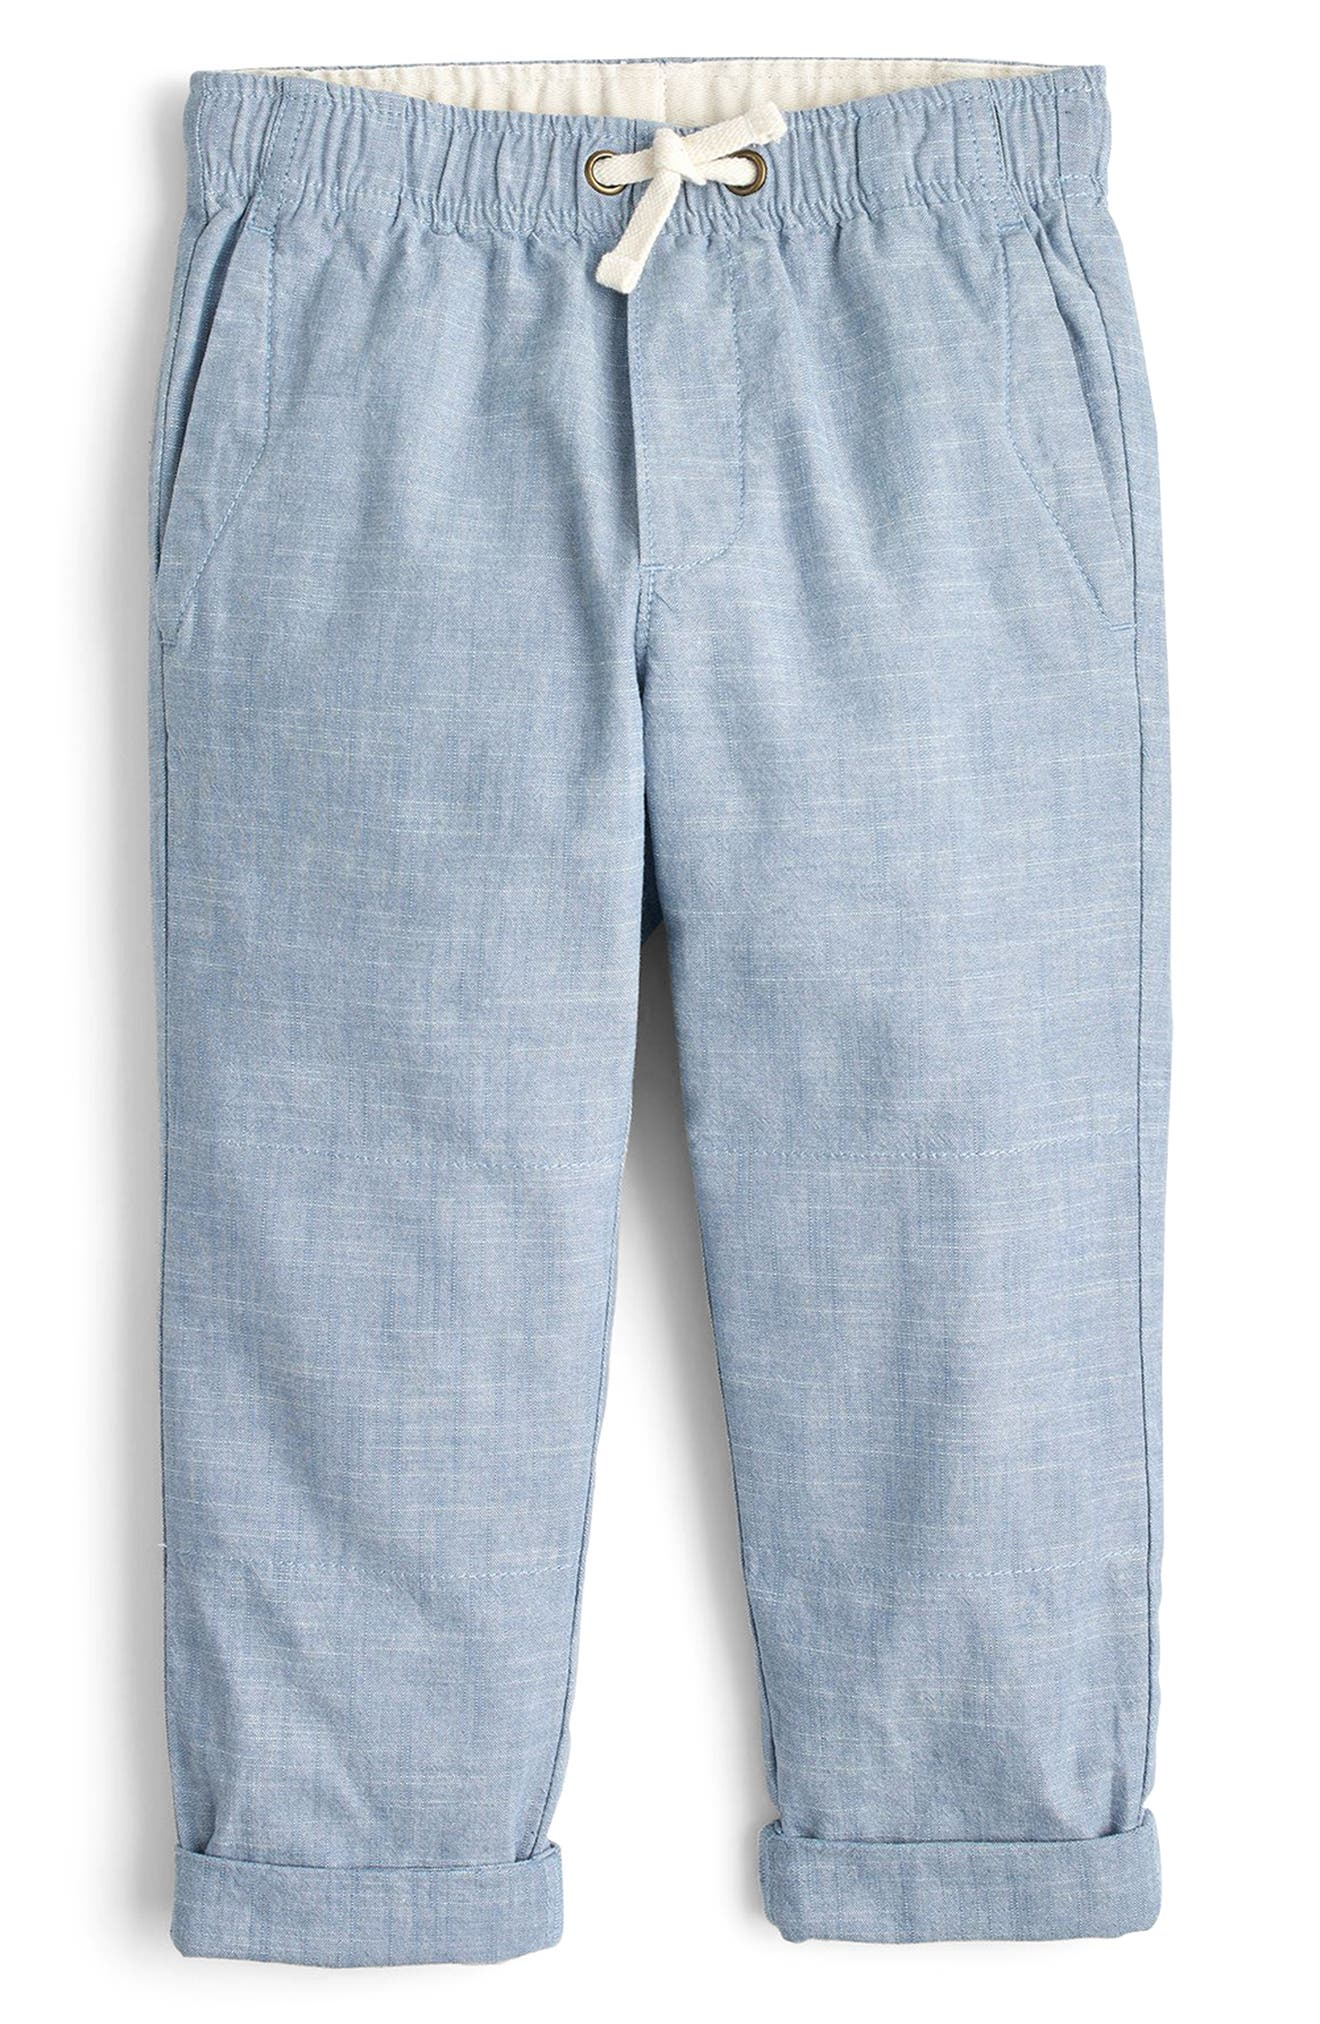 Chambray Reinforced Knee Pull-On Pants,                         Main,                         color,